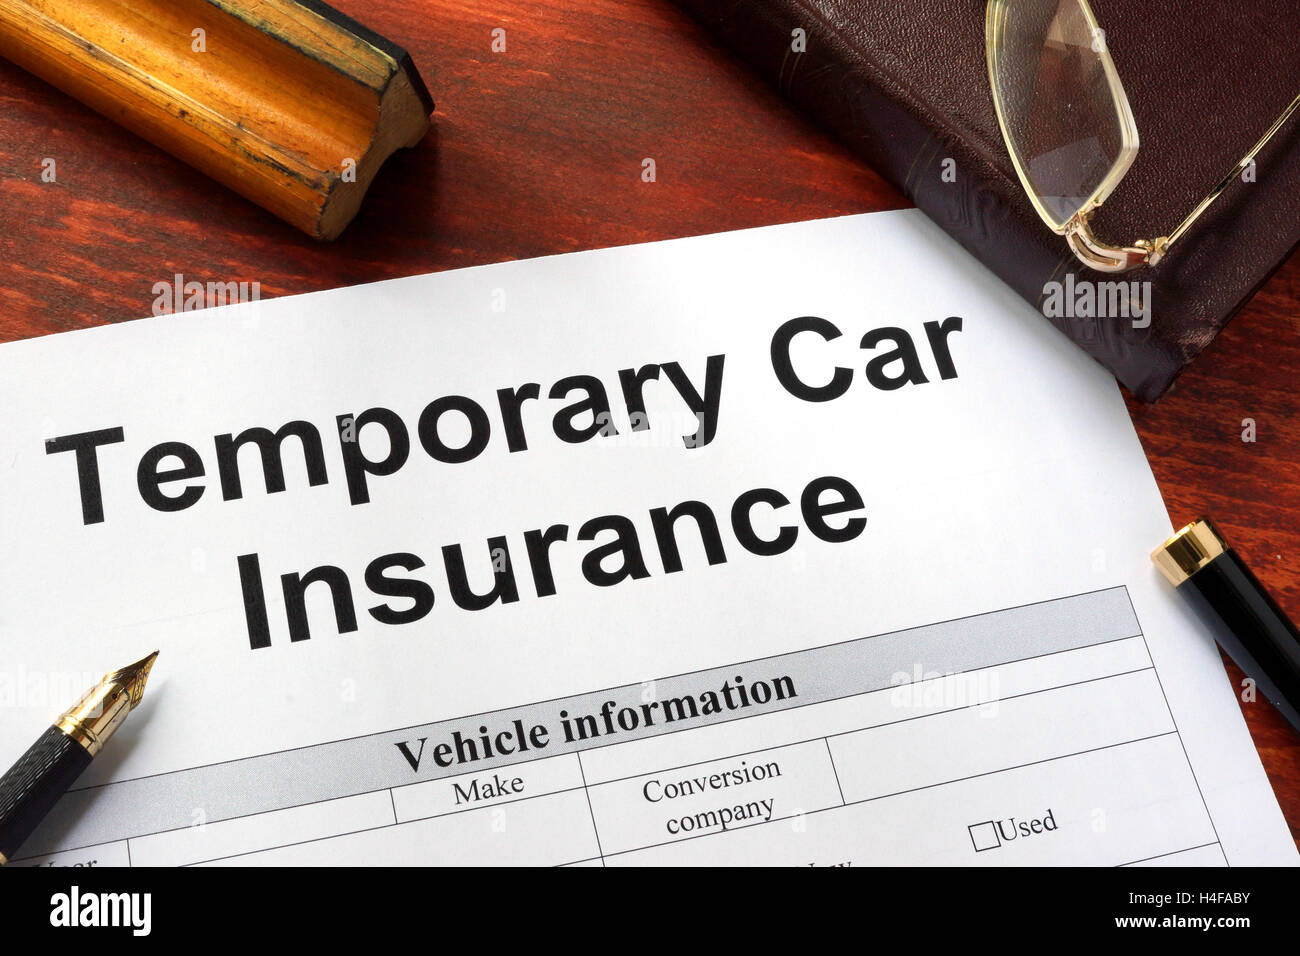 Temporary Car Insurance Application Form On A Table Stock Photo